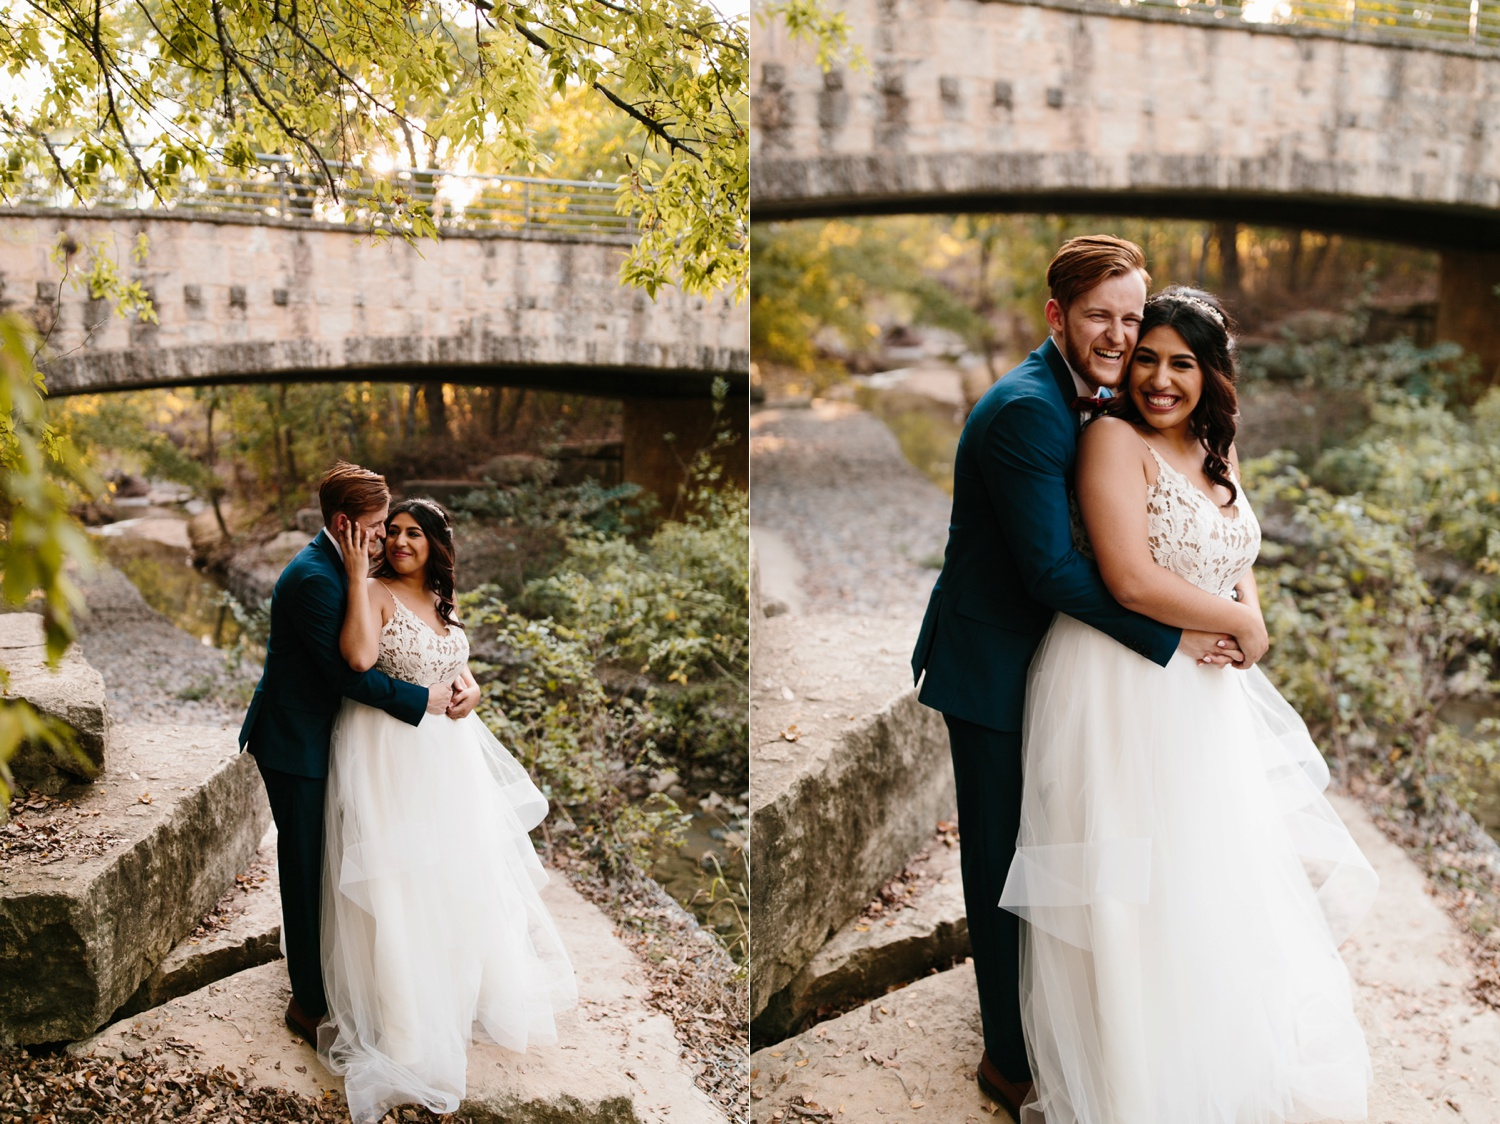 Grant + Lysette | a vibrant, deep burgundy and navy, and mixed metals wedding at Hidden Pines Chapel by North Texas Wedding Photographer Rachel Meagan Photography 212